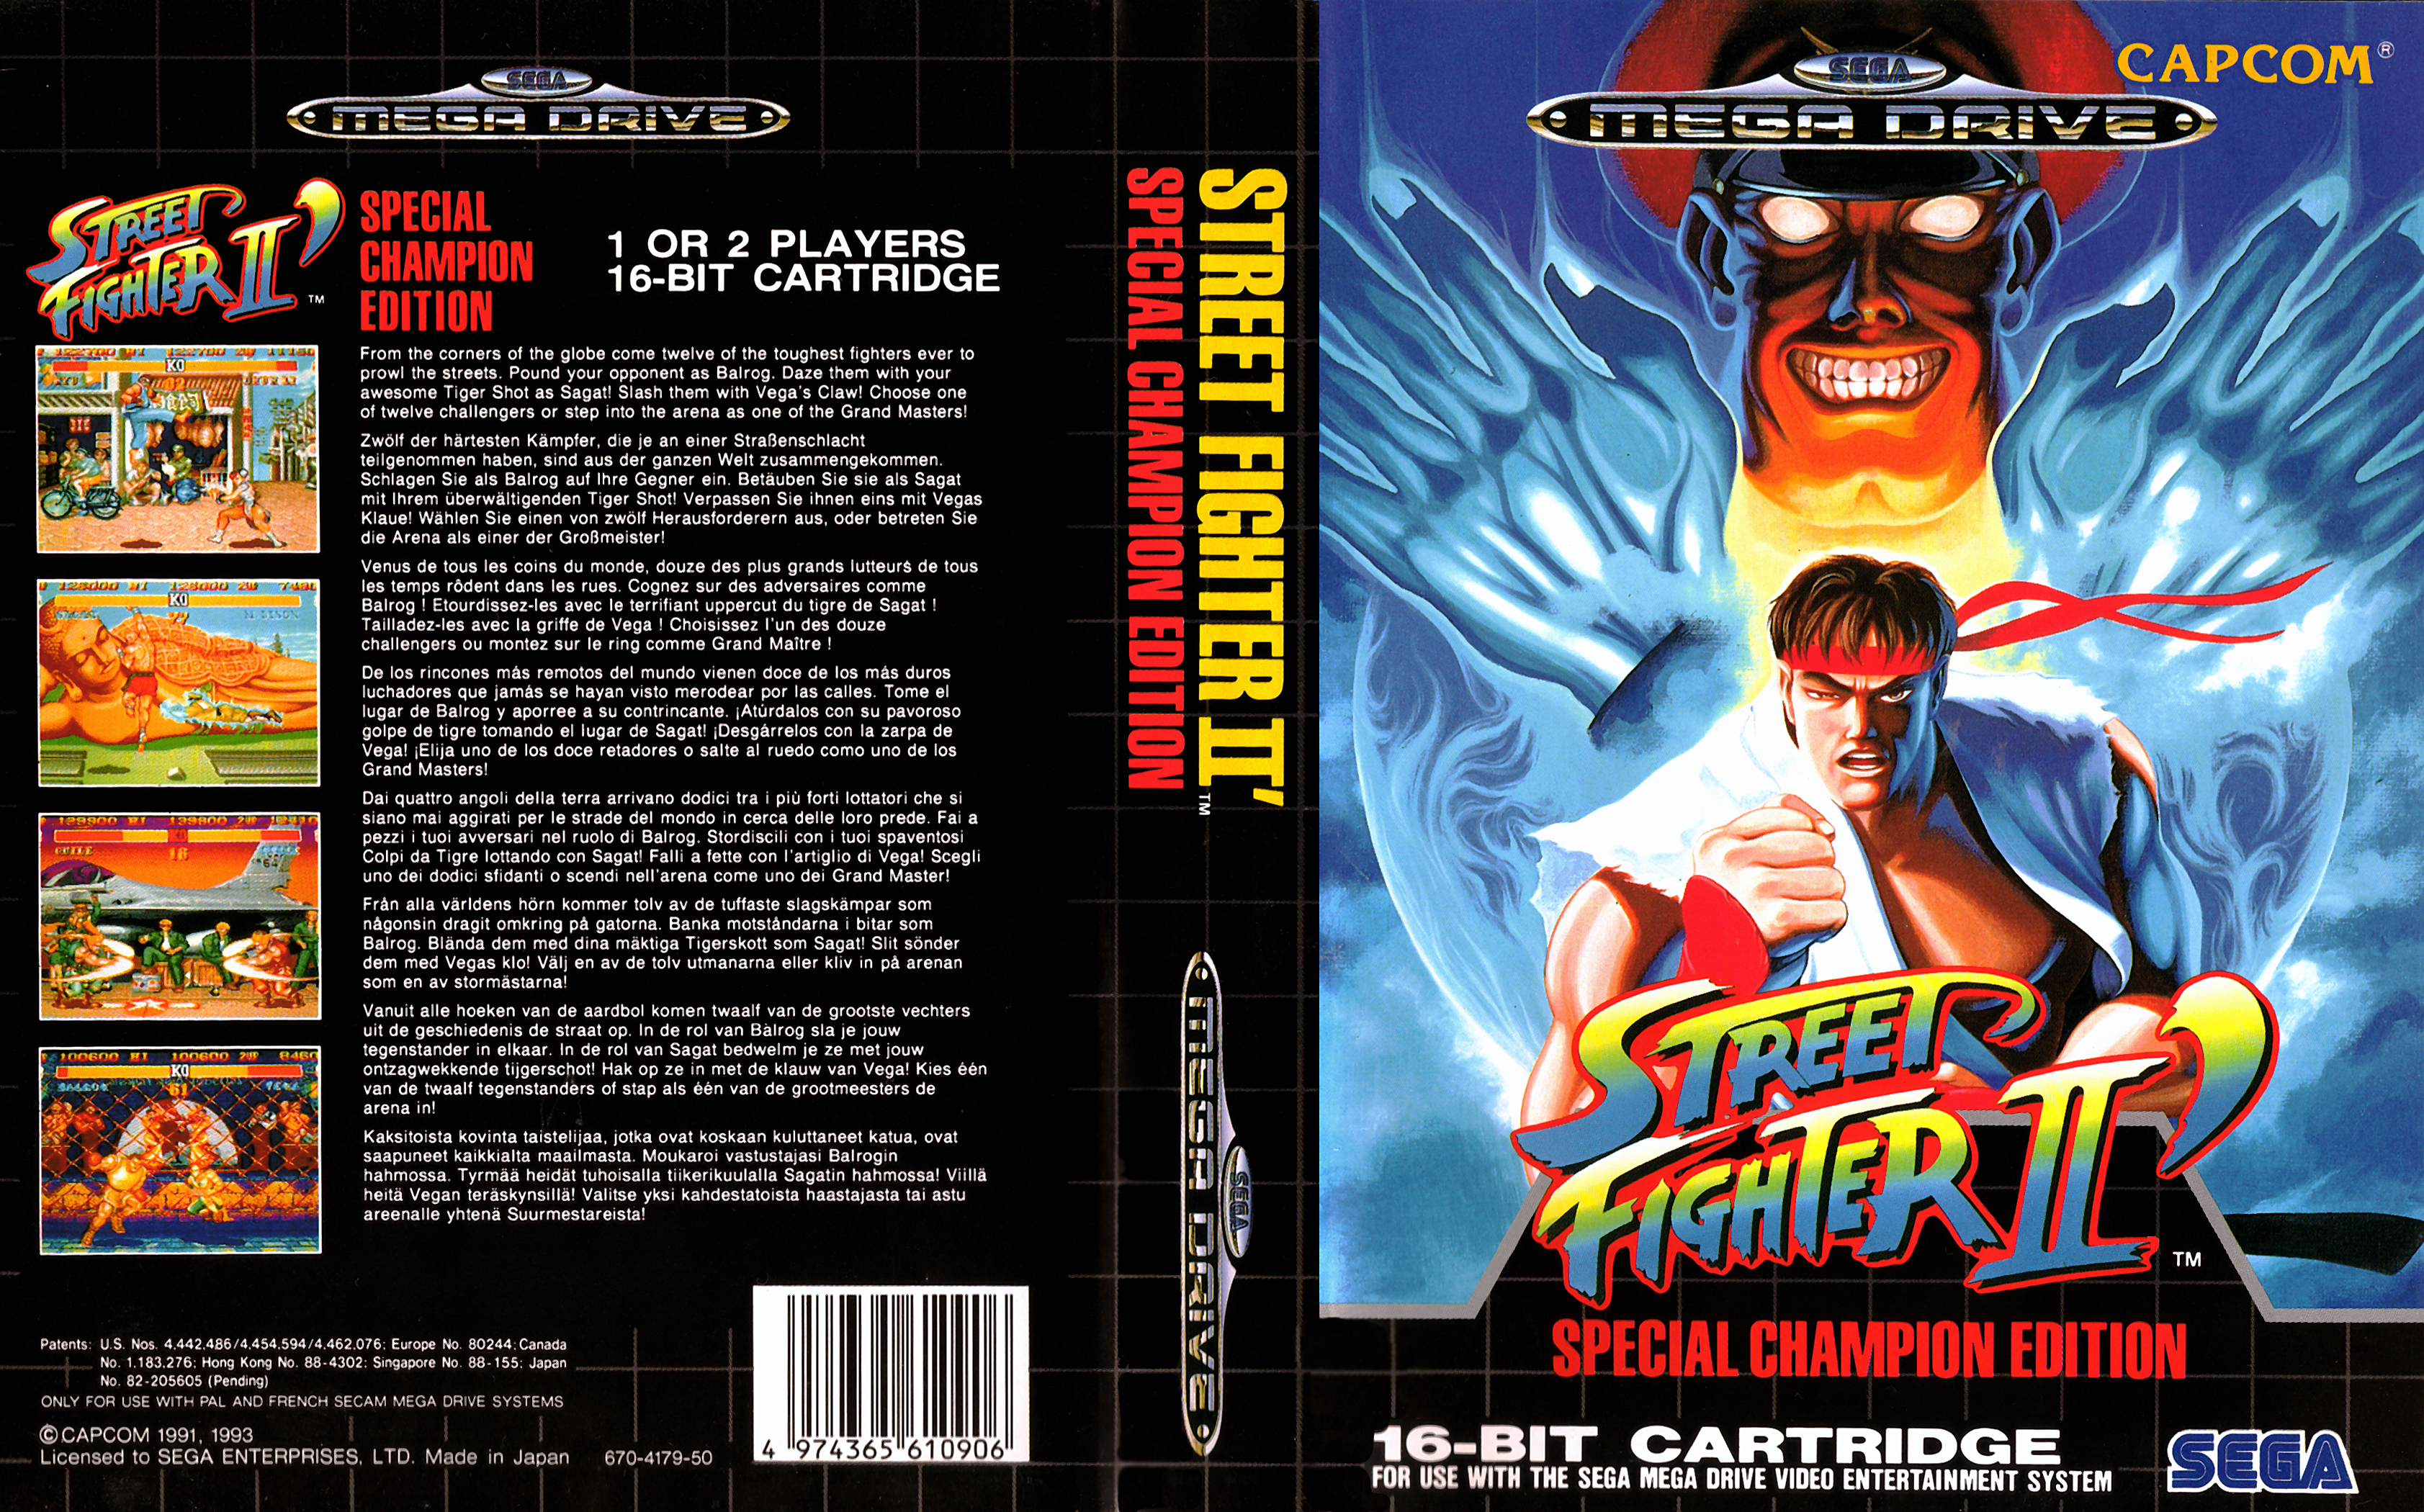 1street-fighter-2-special-champion-edition-6